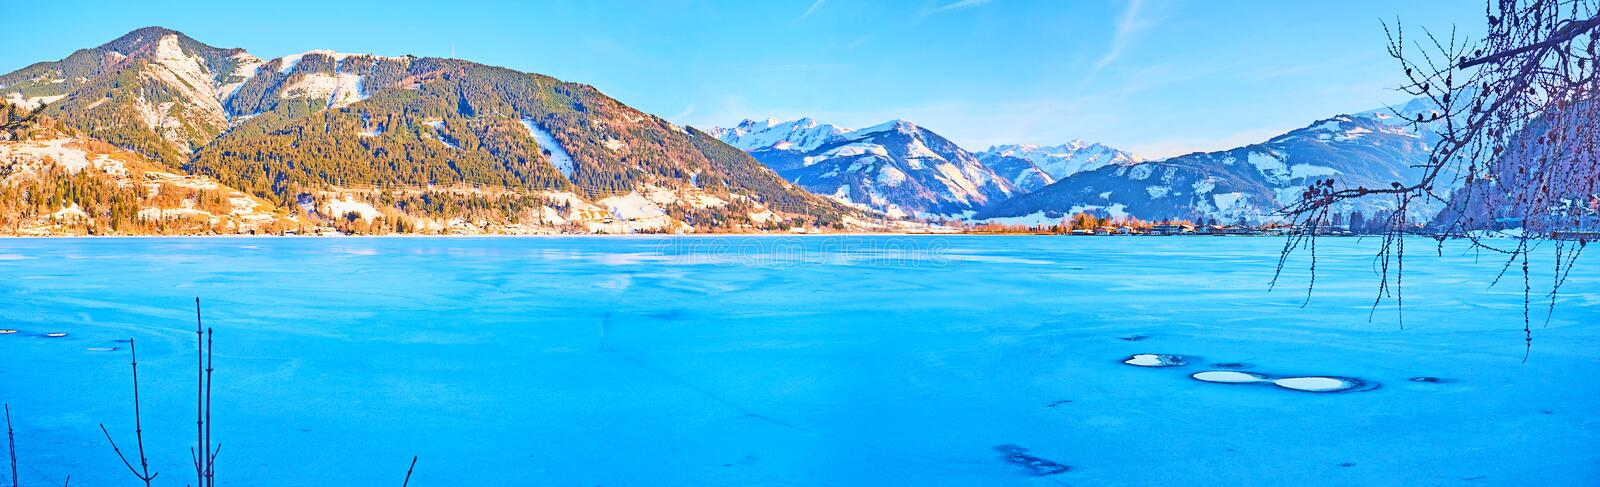 The winter nature of Zell am See, Austria stock image